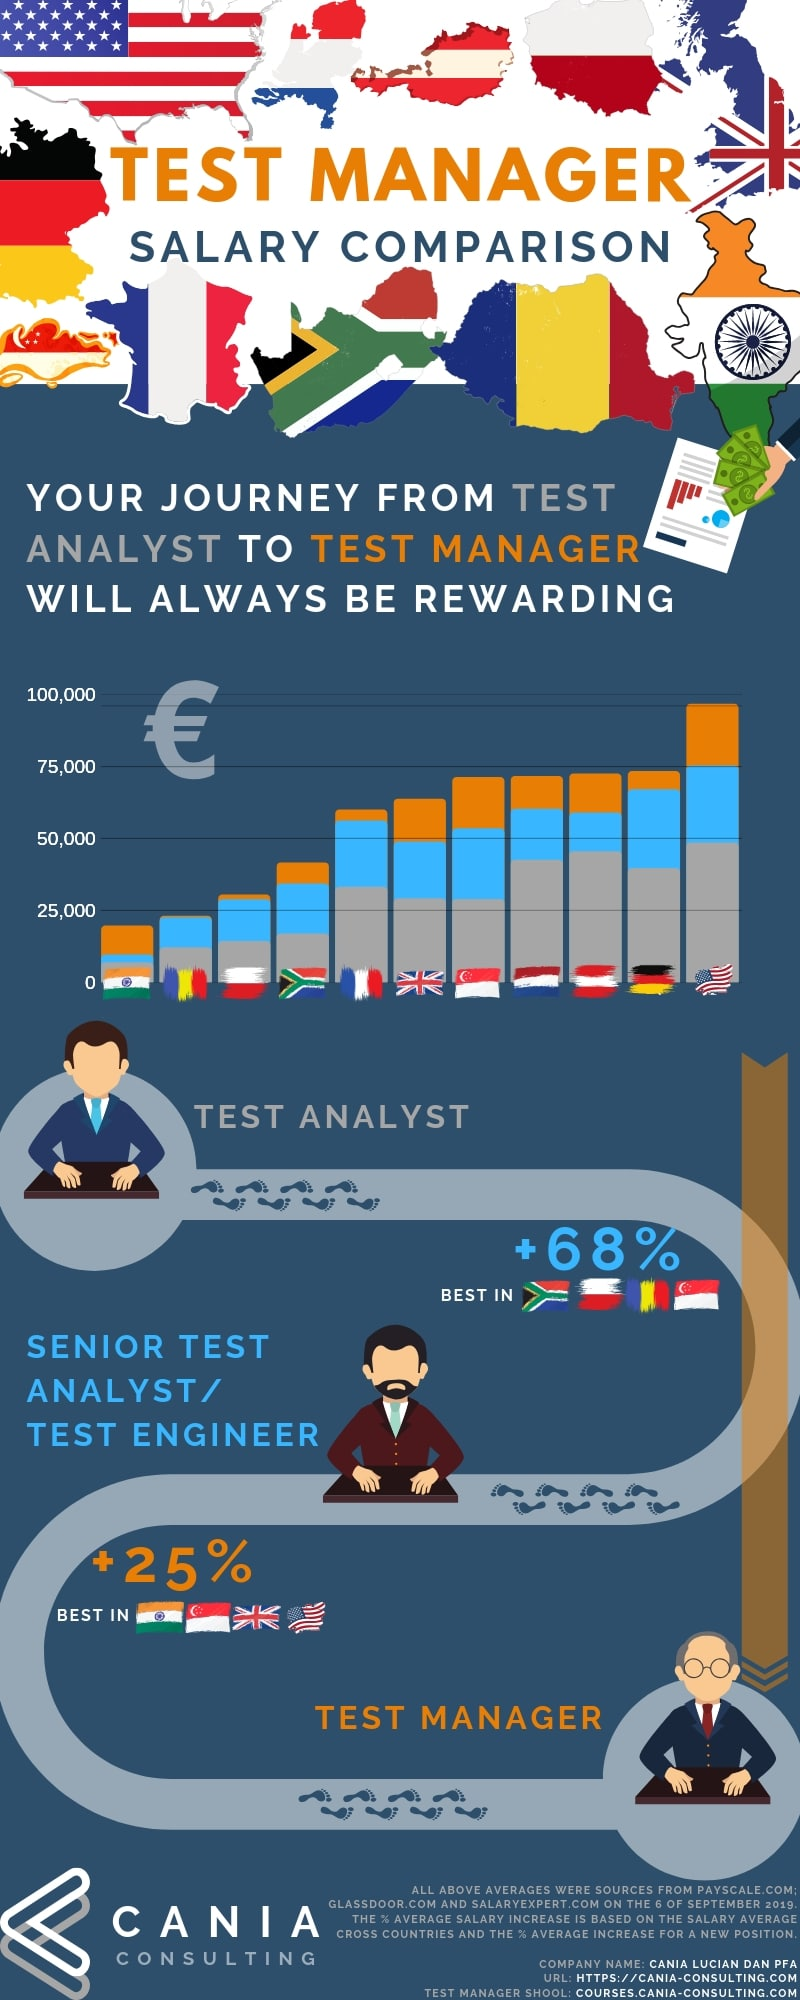 Test Manager Salary